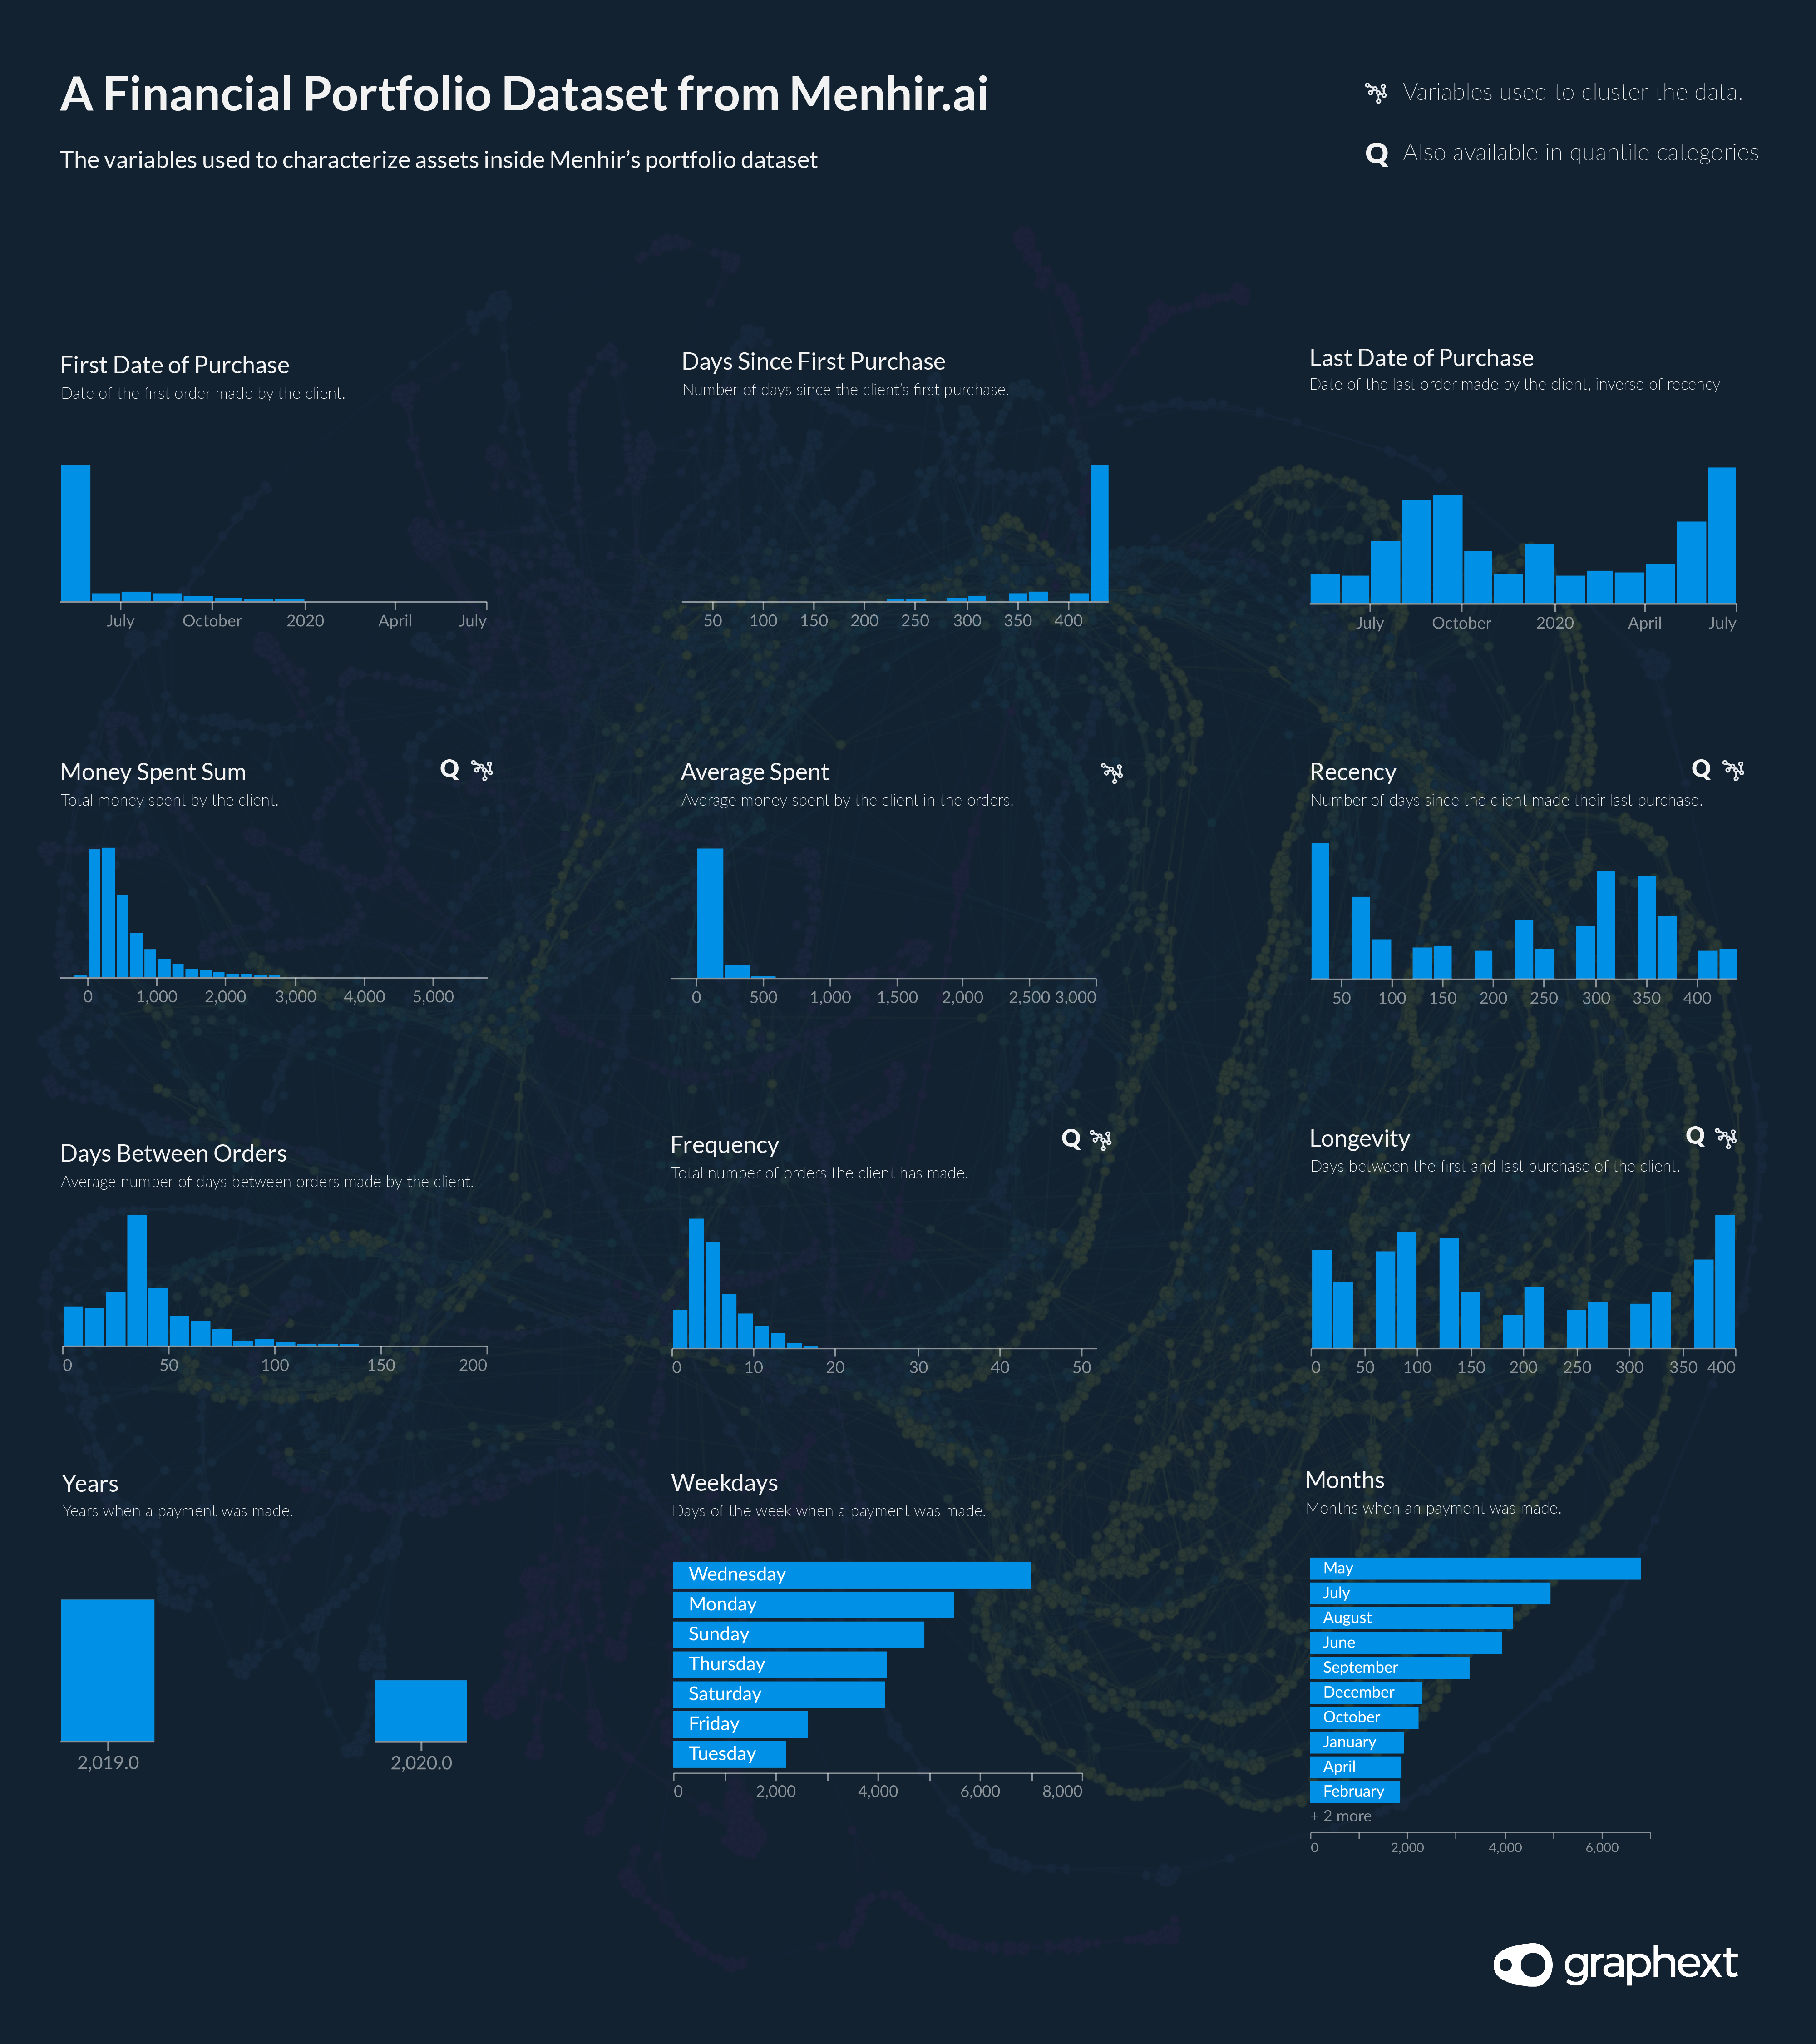 A series of charts showing the distribution of values in Menhir's dataset of 8229 assets from a financial portfolio.